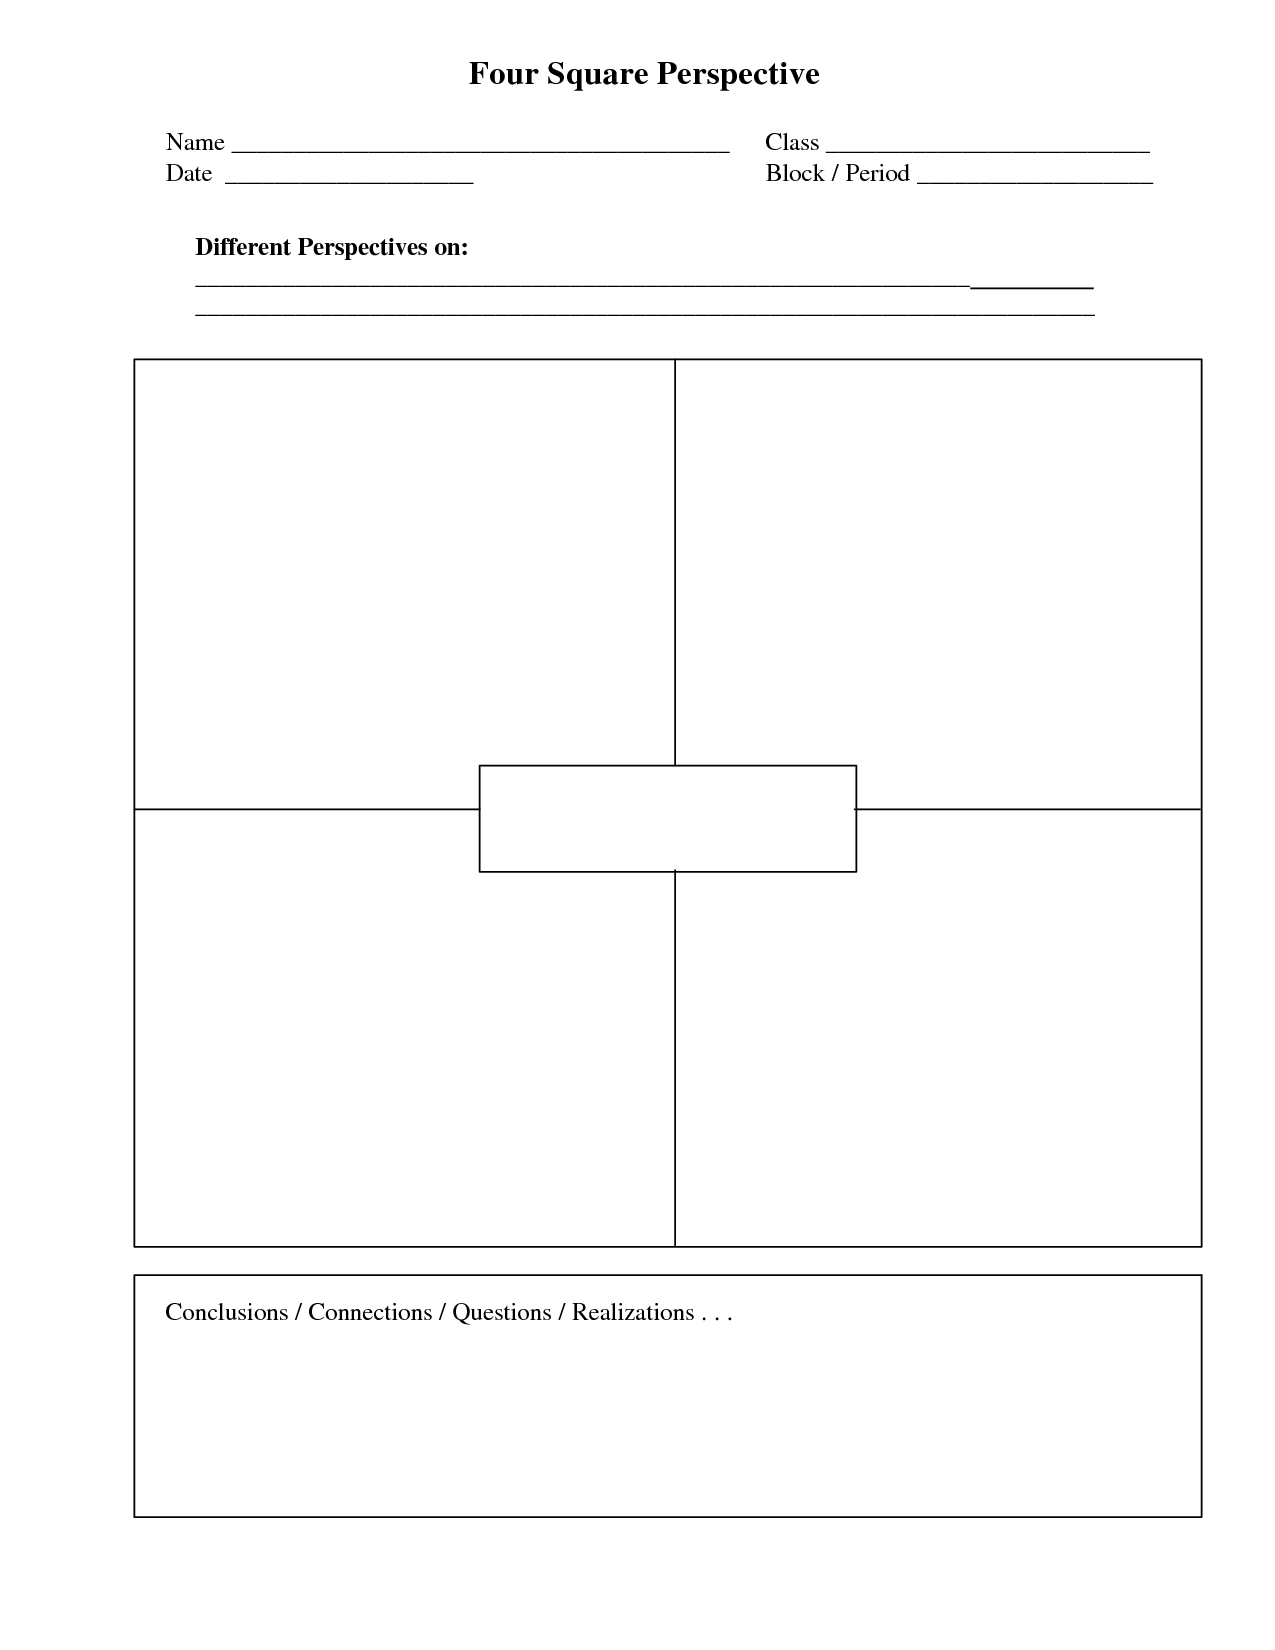 Four Square Writing Template Printable  Four Square Perspective Pertaining To Blank Four Square Writing Template